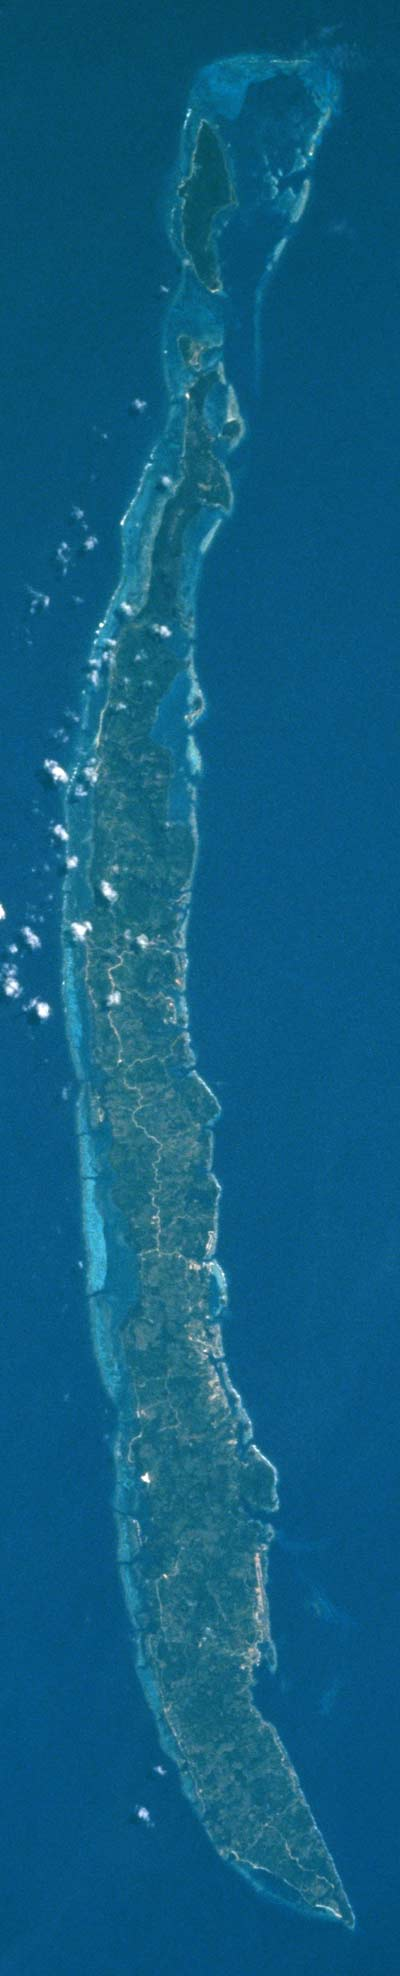 Satellite Image, Photo of Roatan Island, Bay Islands Department, Honduras